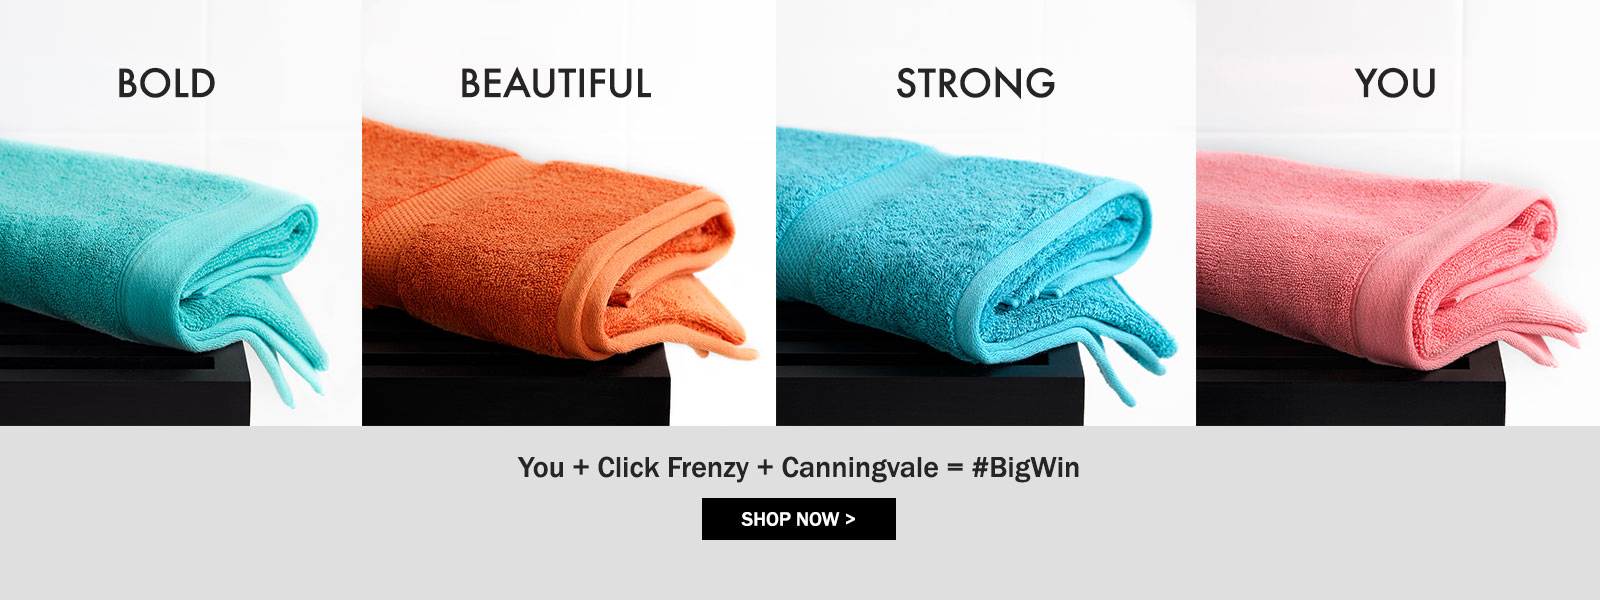 You + Click Frenzy + Canningvale = #BigWin